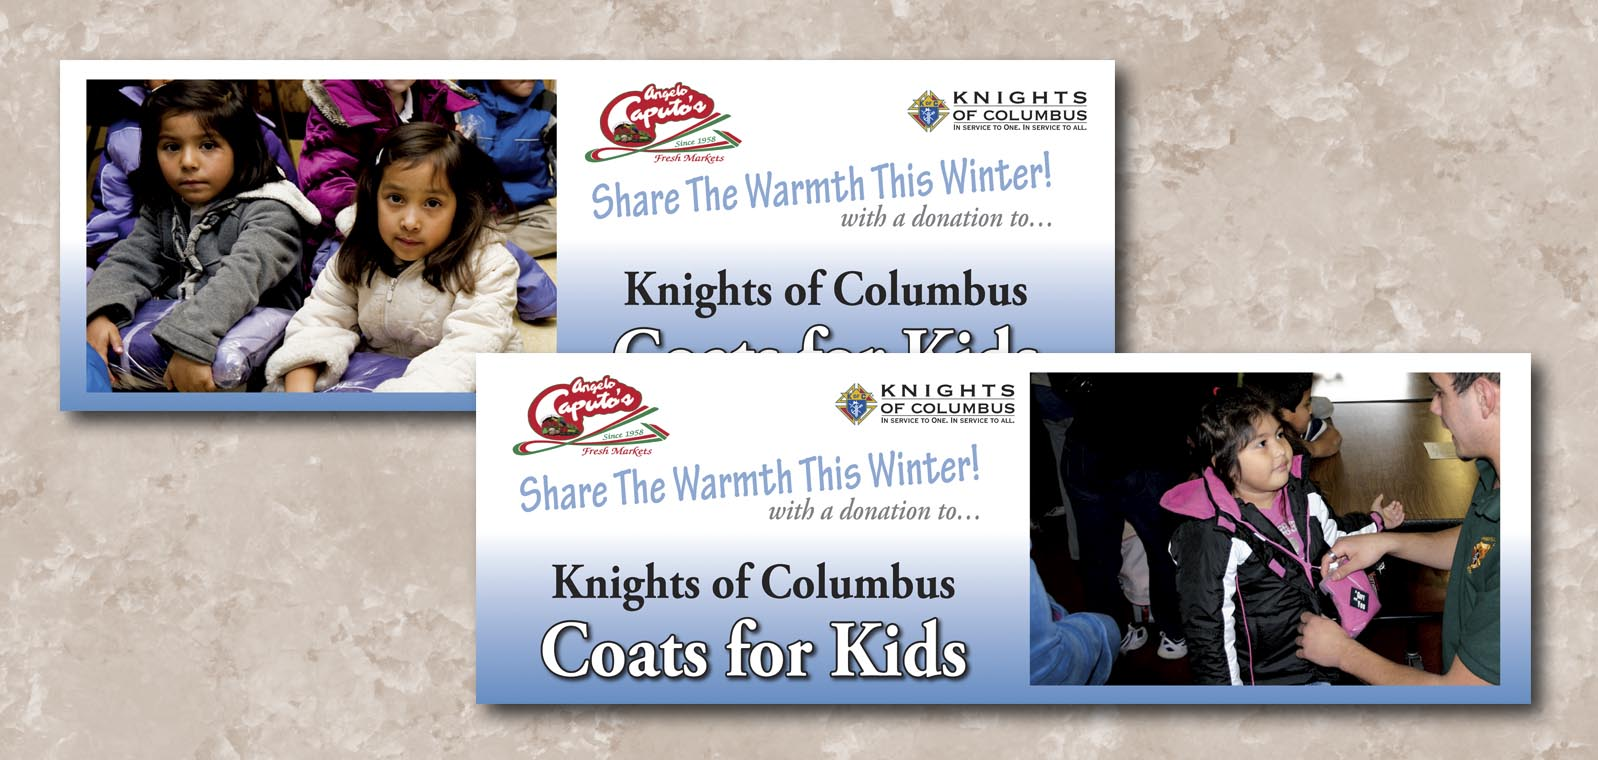 Signage Graphic Design for the Knights of Columbus, by Roselle Graphic Designer Controlled Color, Inc.